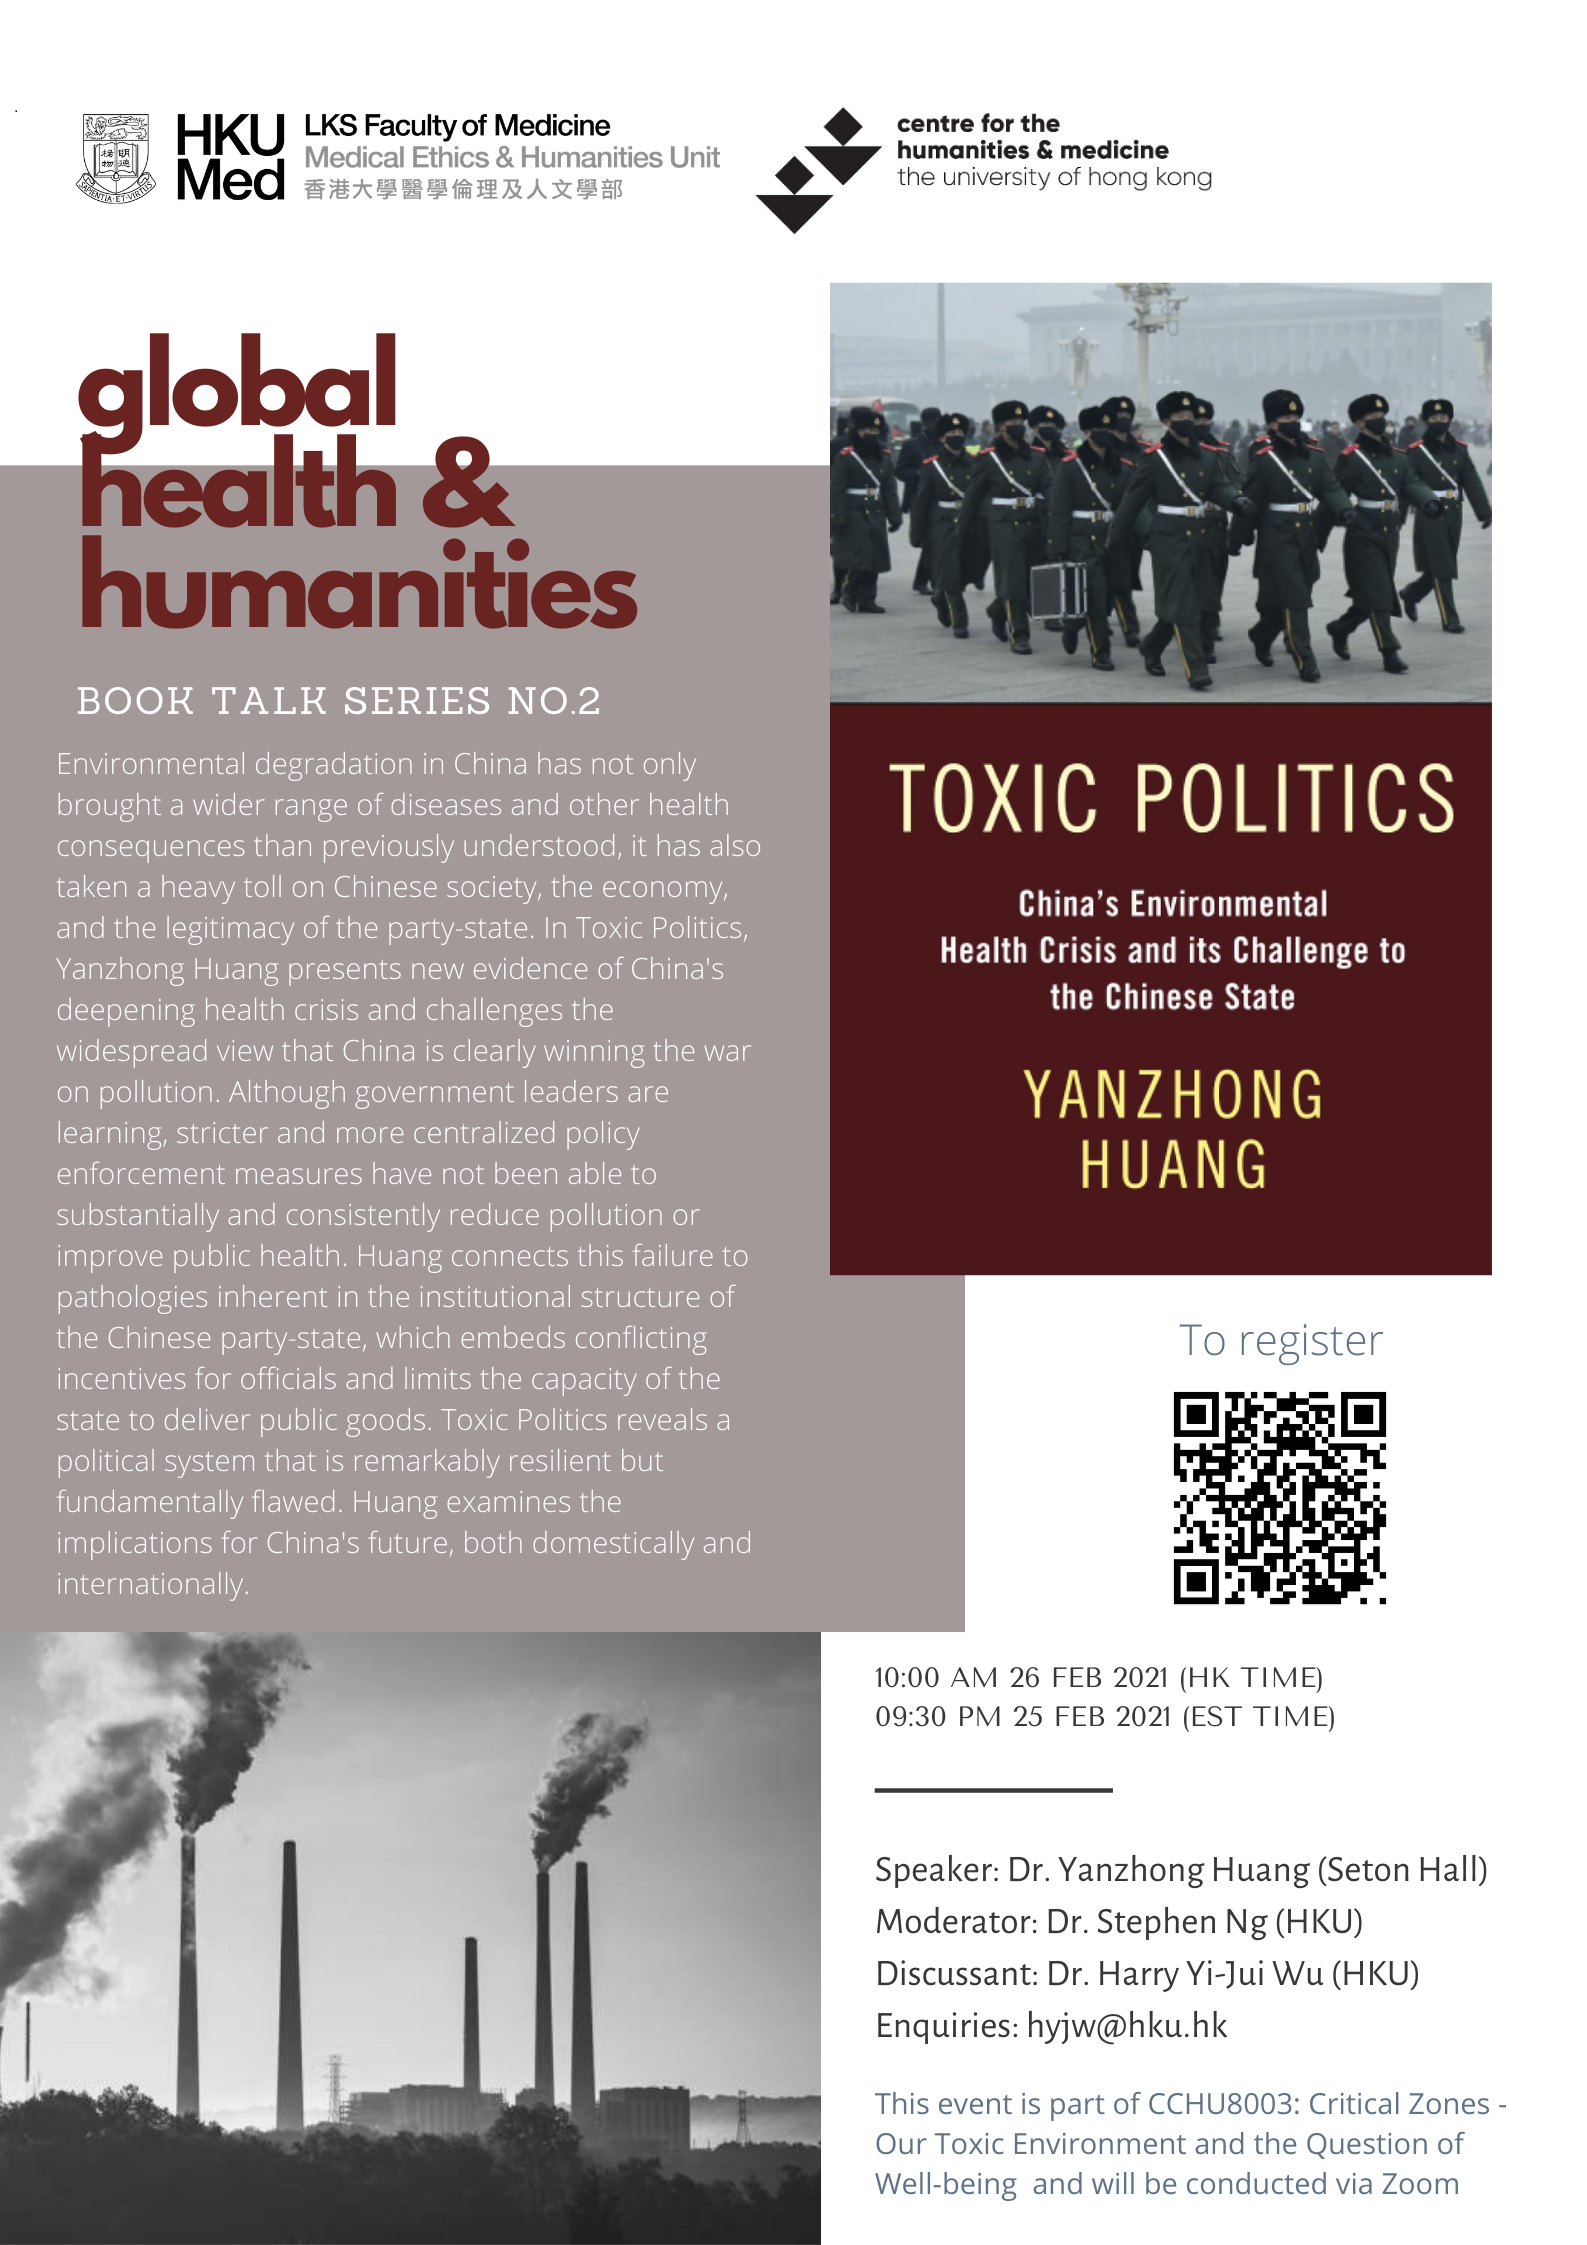 Book Talk Series No.2- Toxic Politics: China's Environmental Health Crisis and Its Challenge to the Chinese State